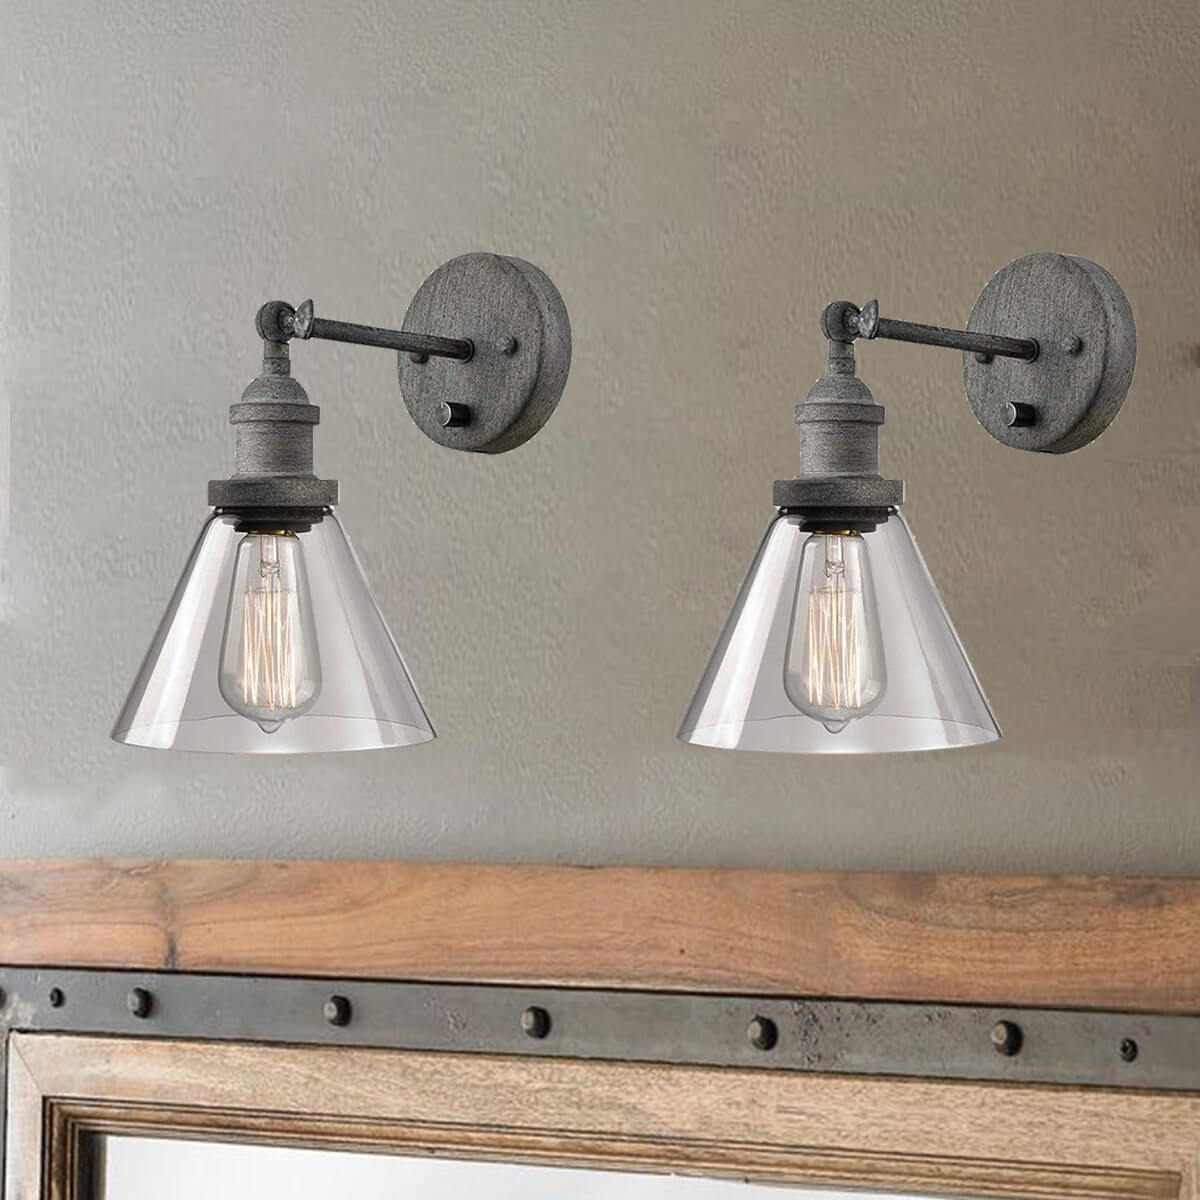 Rustic Mycete Hardwired And Plug In Swing Arm Wall Sconces 2 Pack